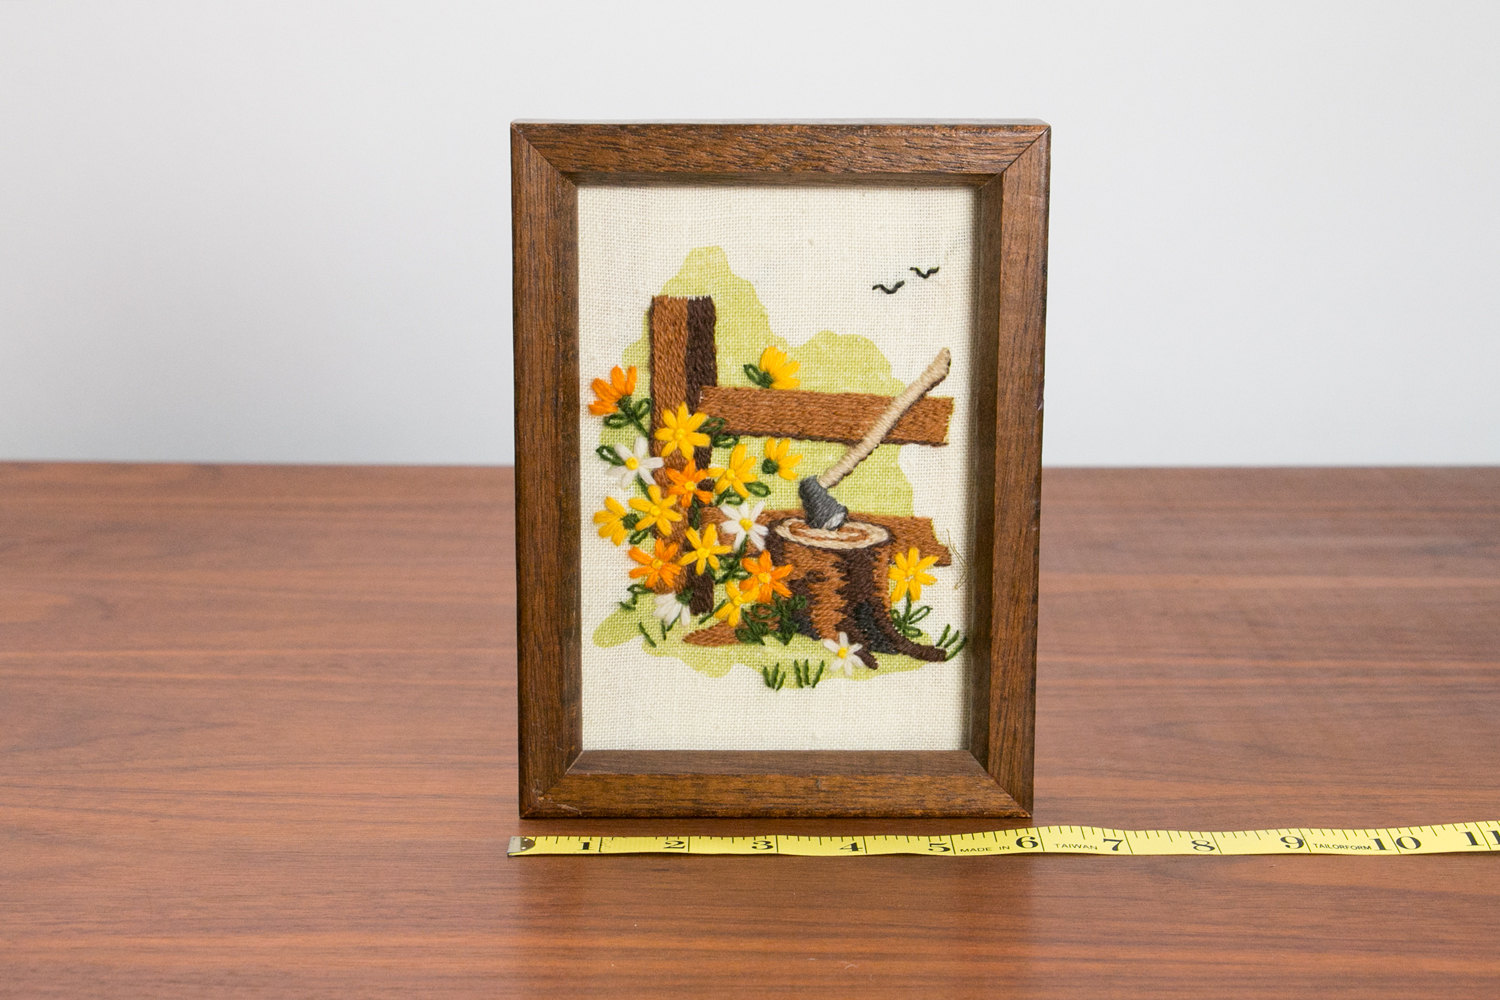 Vintage 1950's Framed Needlepoint of Axe in Wood w Spring Flowers and Birds - Small, Wood Frame, Mid Century, Retro, Hipster